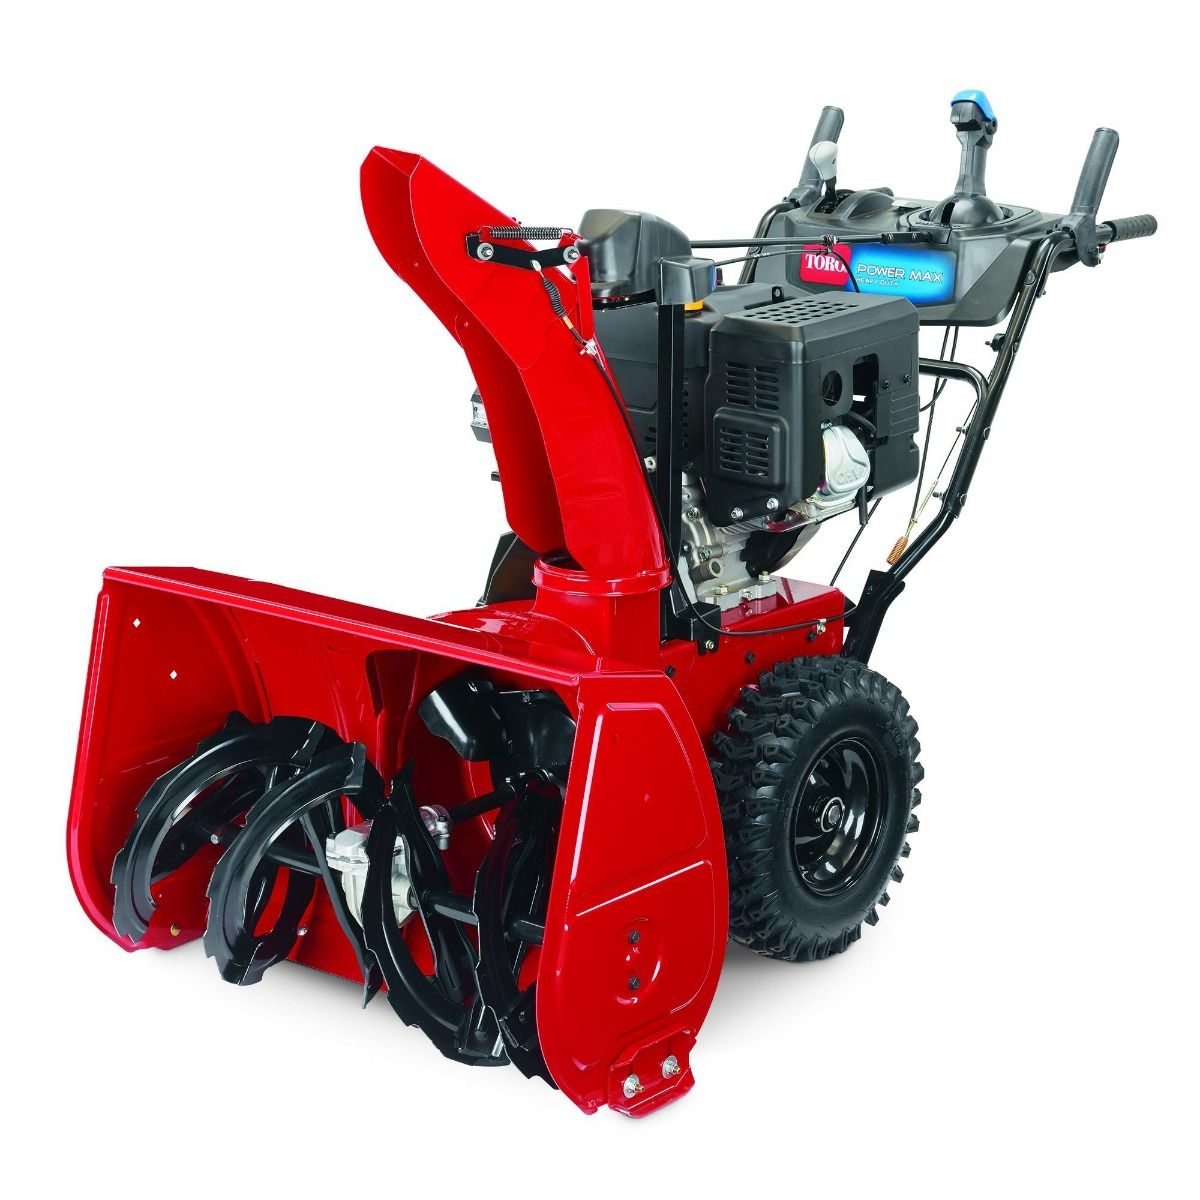 Toro 38840 Power Max HD 928OAE Two-Stage Snowblower